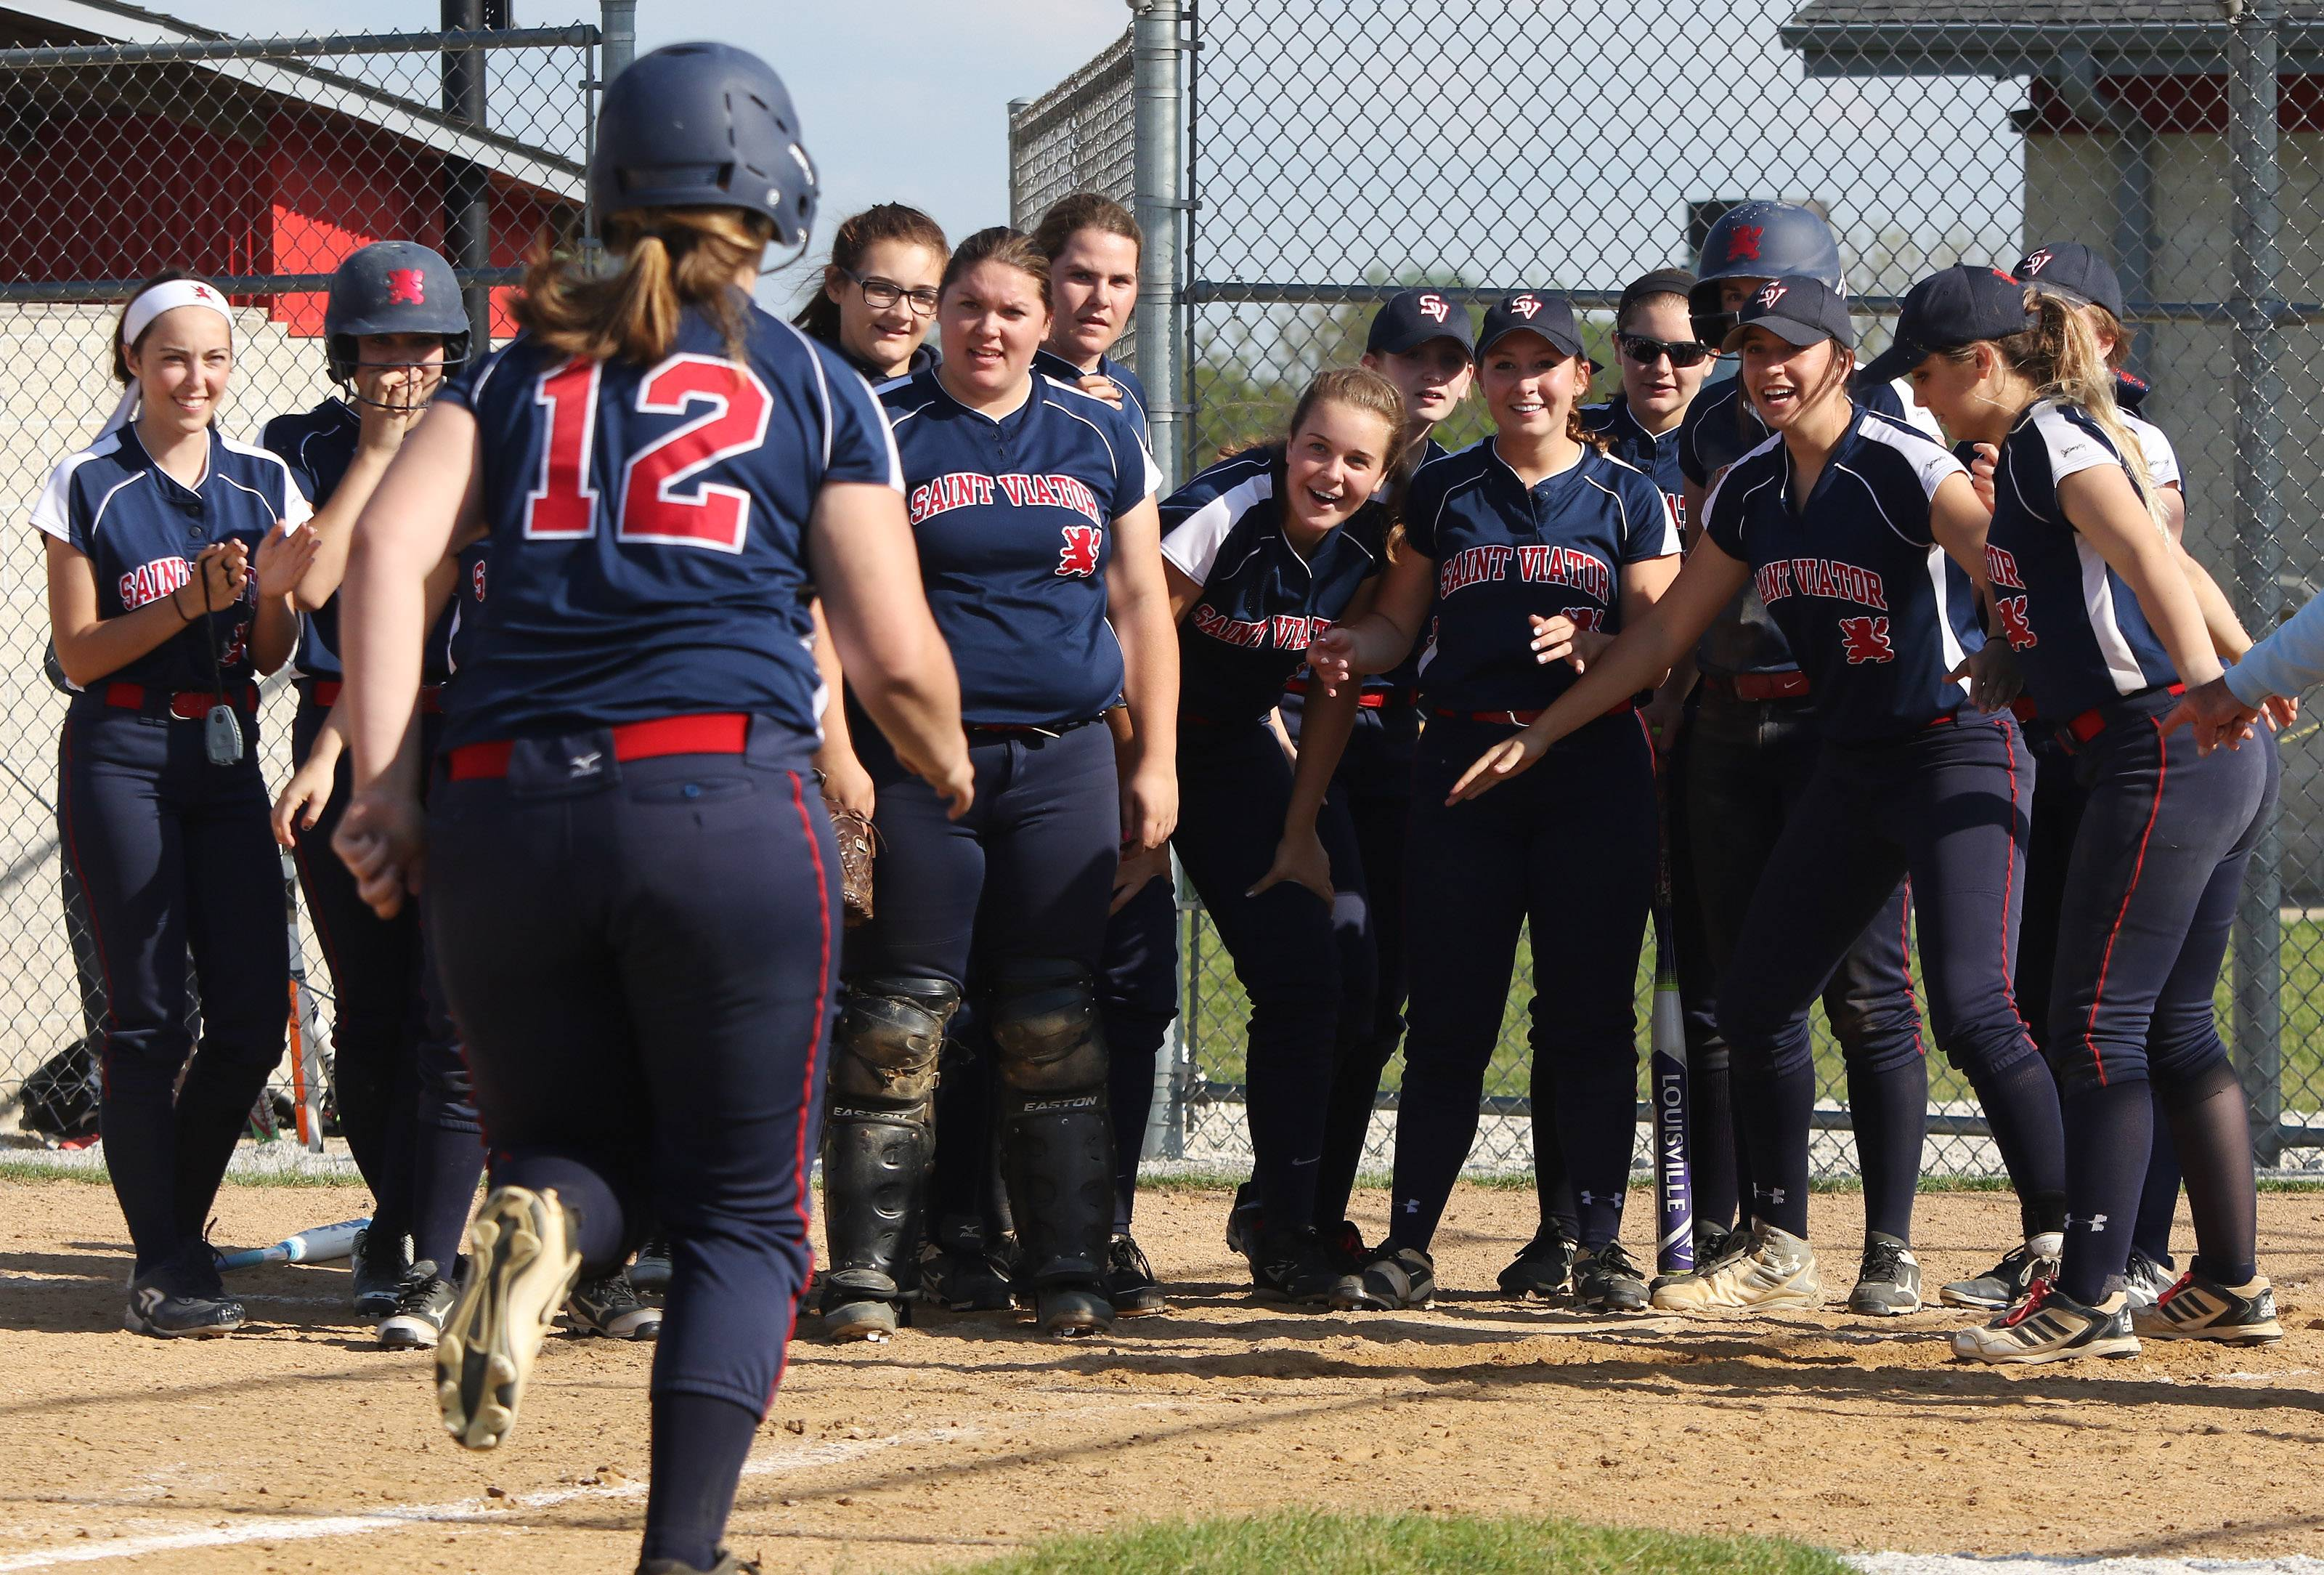 St. Viator teammates wait at the plate to celebrate with Cece Kaiser after she hit a 2-run homer in the fourth inning of Class 3A sectional semifinal play at Antioch on Tuesday.